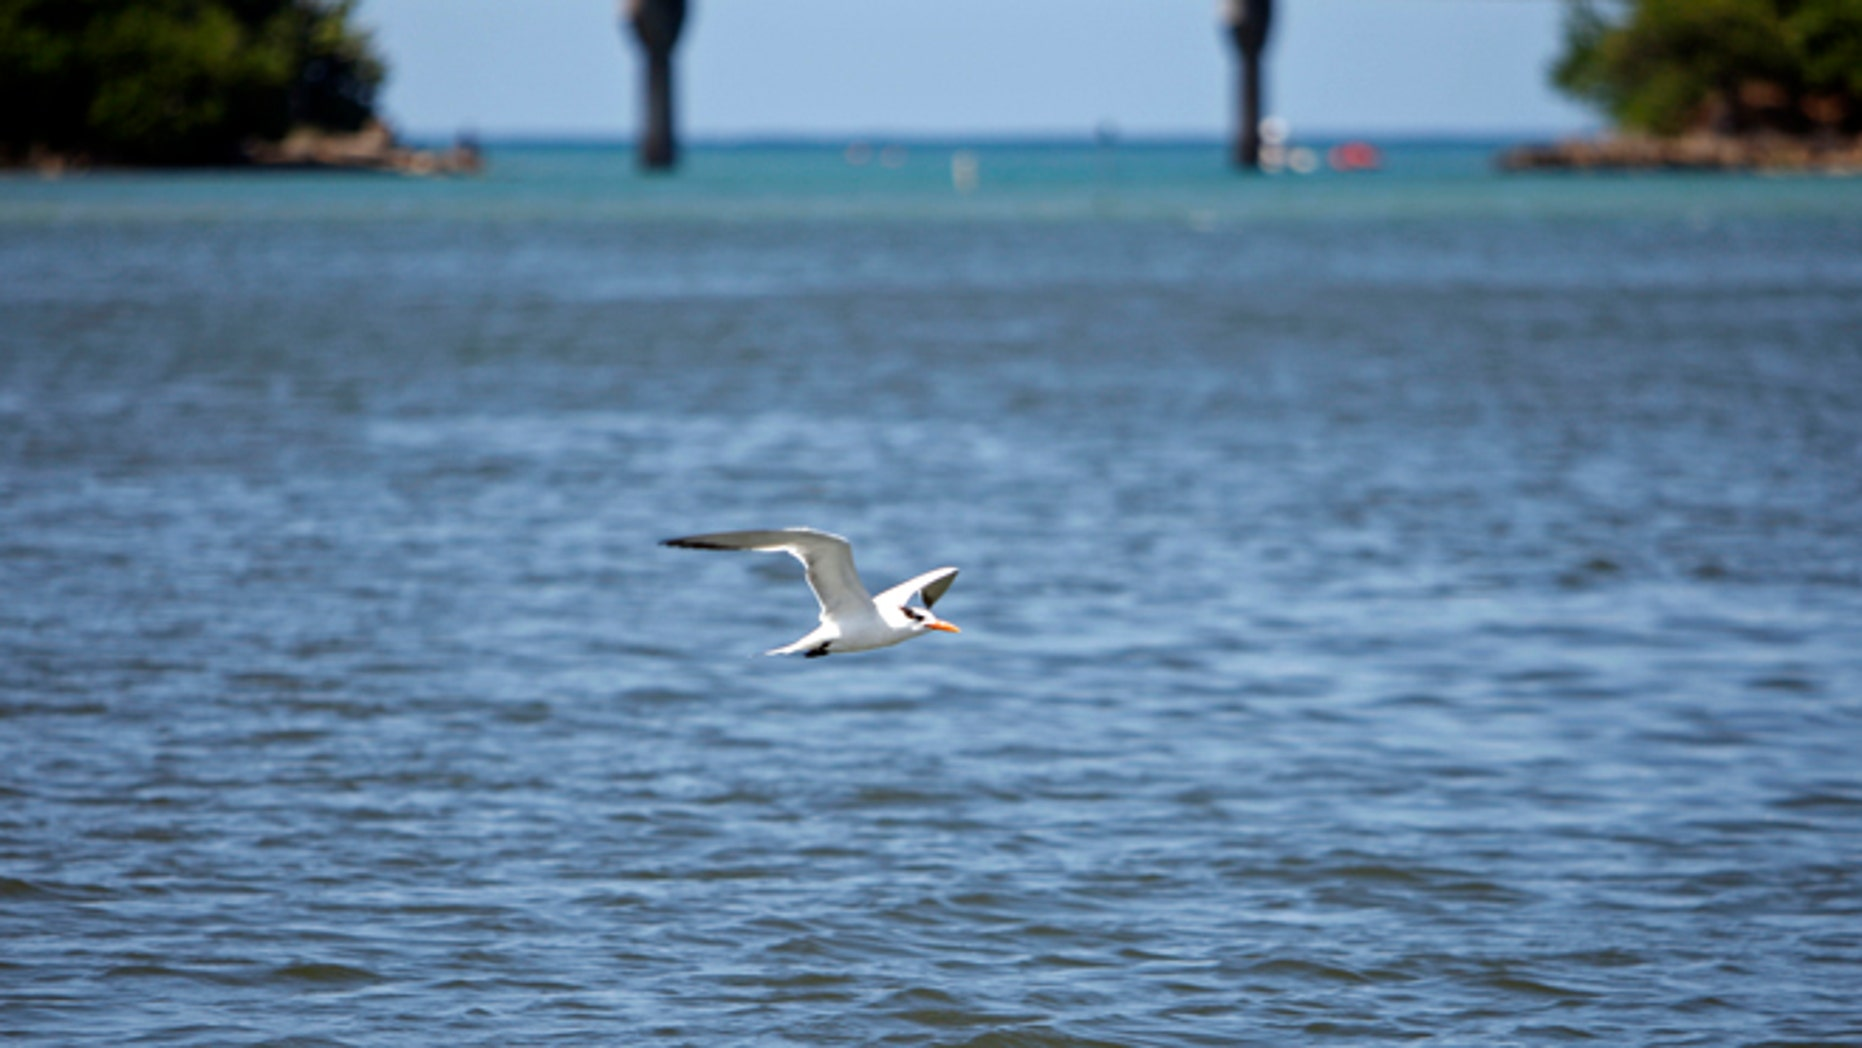 In this Oct. 26, 2013 photo, a bird flies over the San Juan Bay Estuary in San Juan, Puerto Rico. The estuary is surrounded by a maze of dark-green mangroves that offer shelter and shade to dozens of bird species. Across the open waters, pelicans swoop down for prey and people still catch fish and crab, despite health warnings due to contamination. (AP Photo/Ricardo Arduengo)